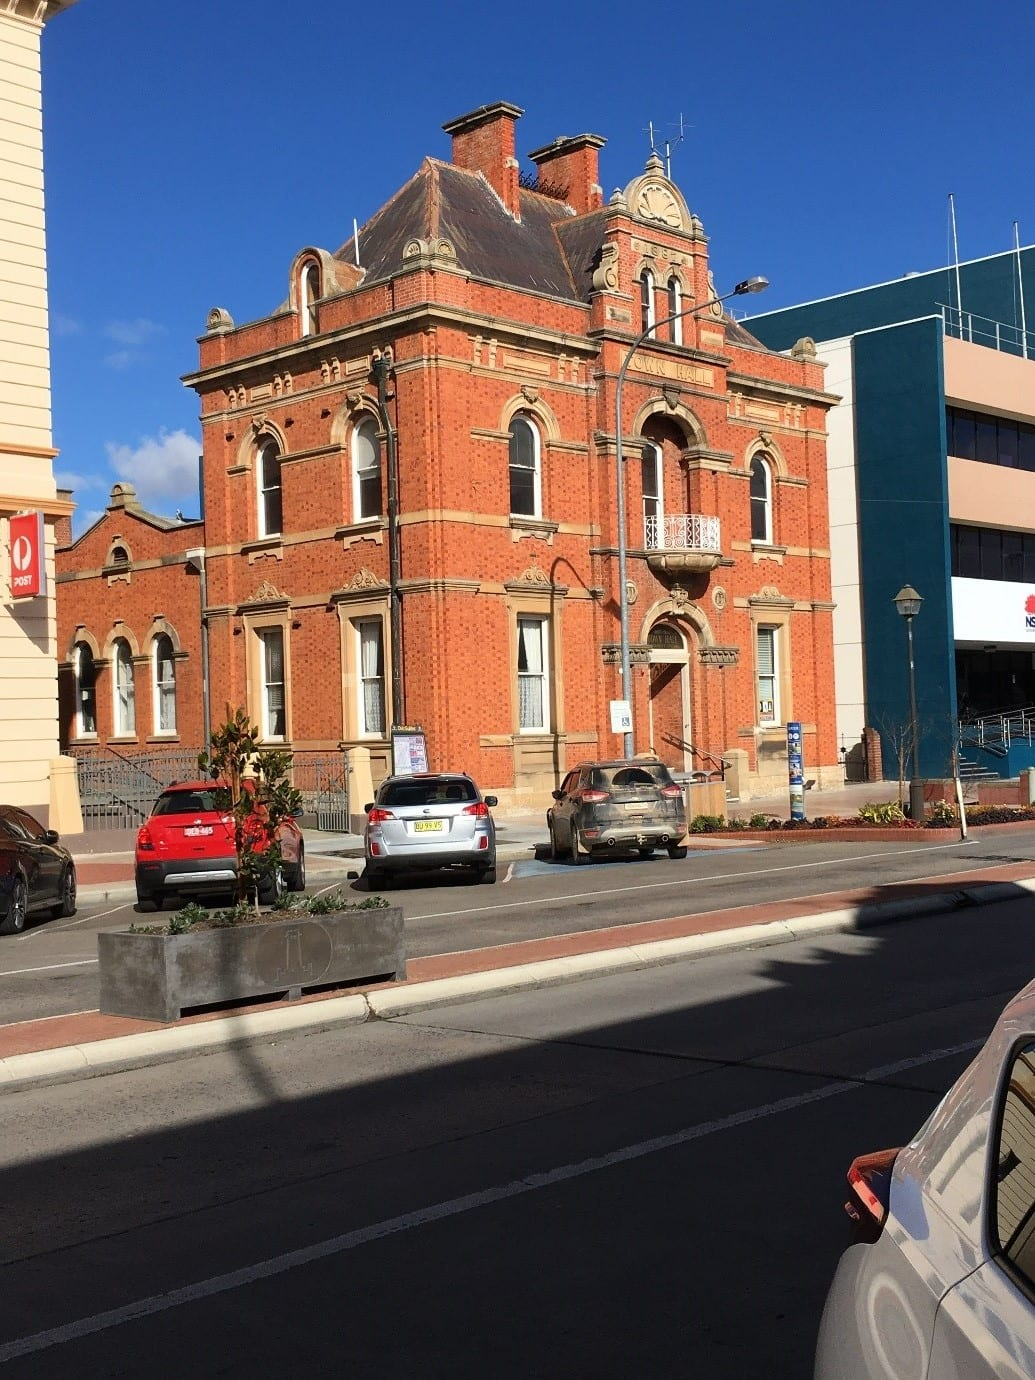 Fig.1 - Goulburn Town Hall, Goulburn - NSW, Australia